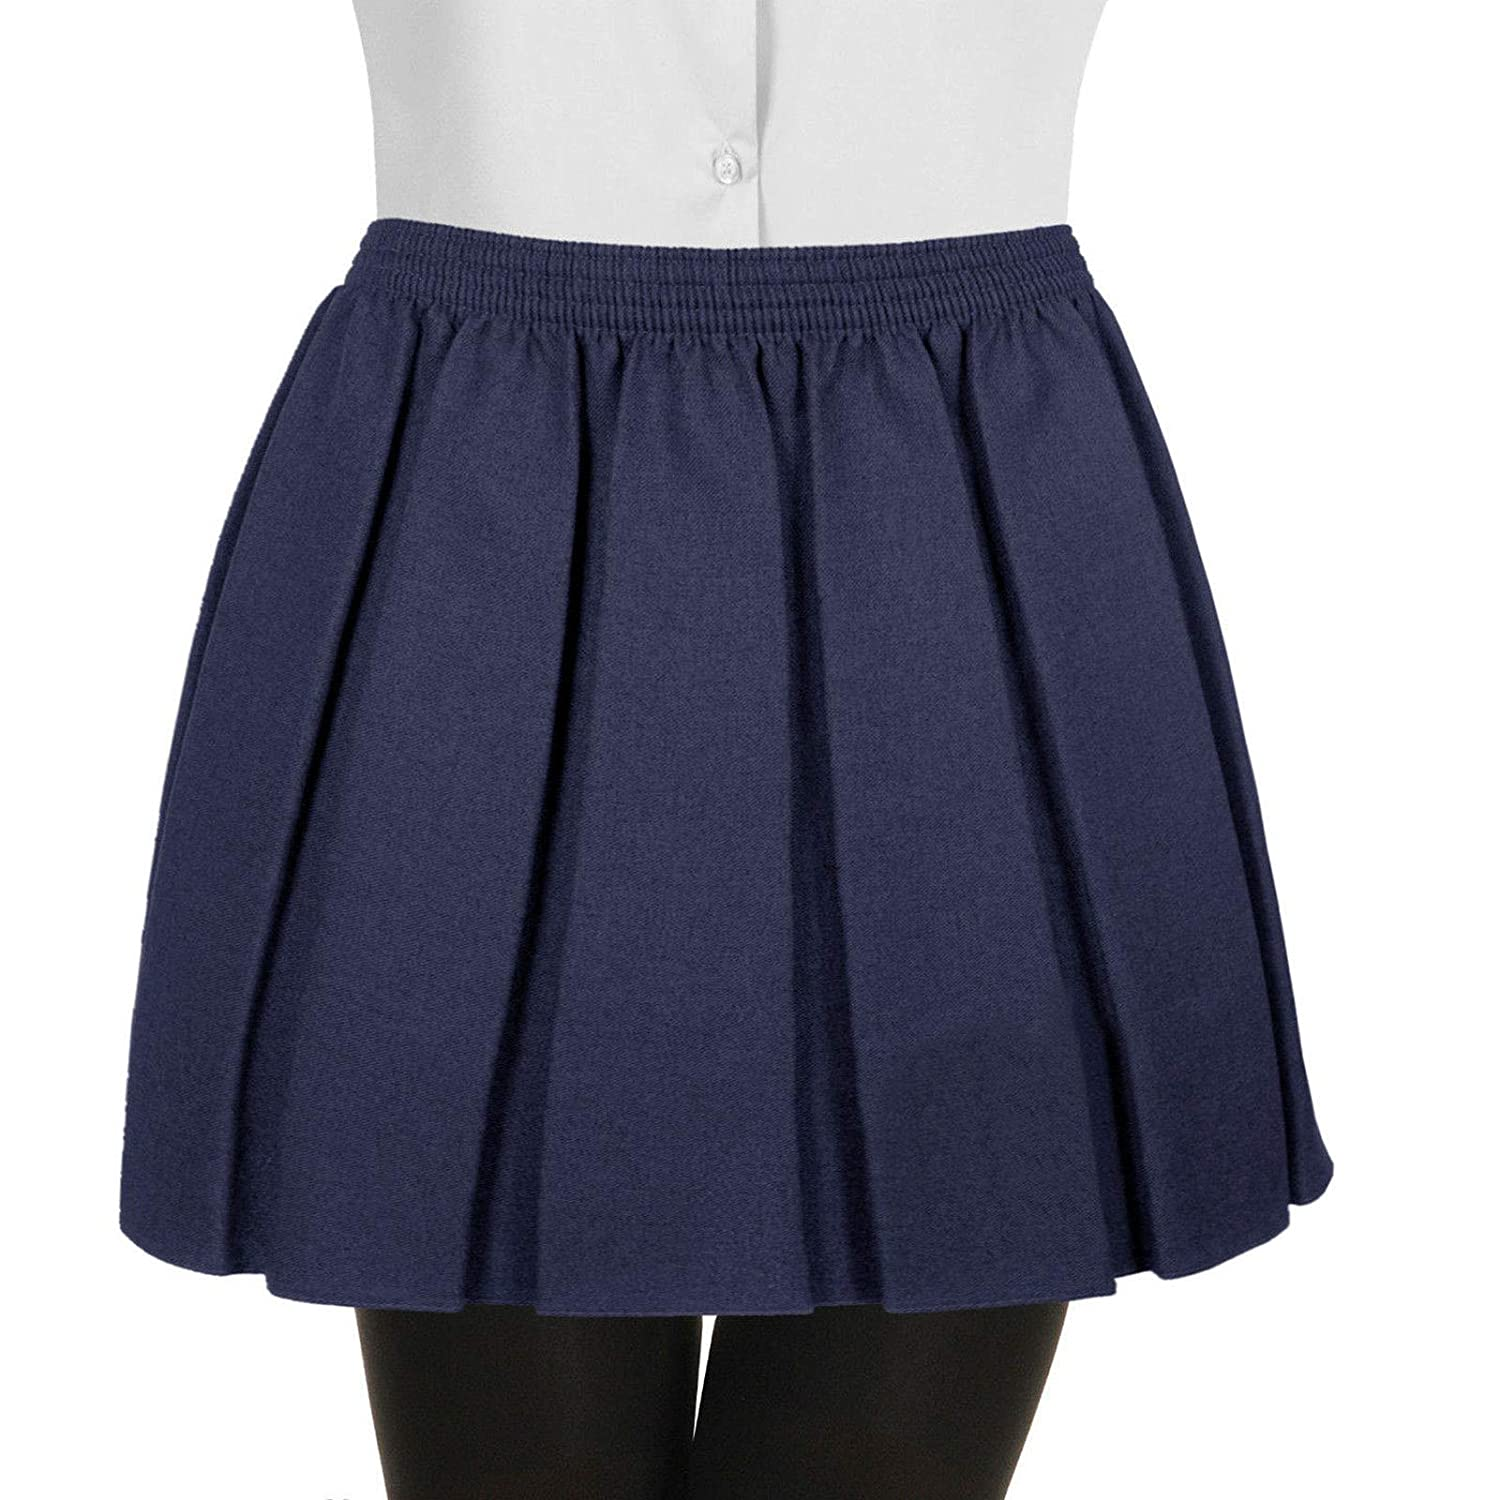 Womens Ladies Kids Girls Pleated School Uniform Full Elasticated Waist Skirt